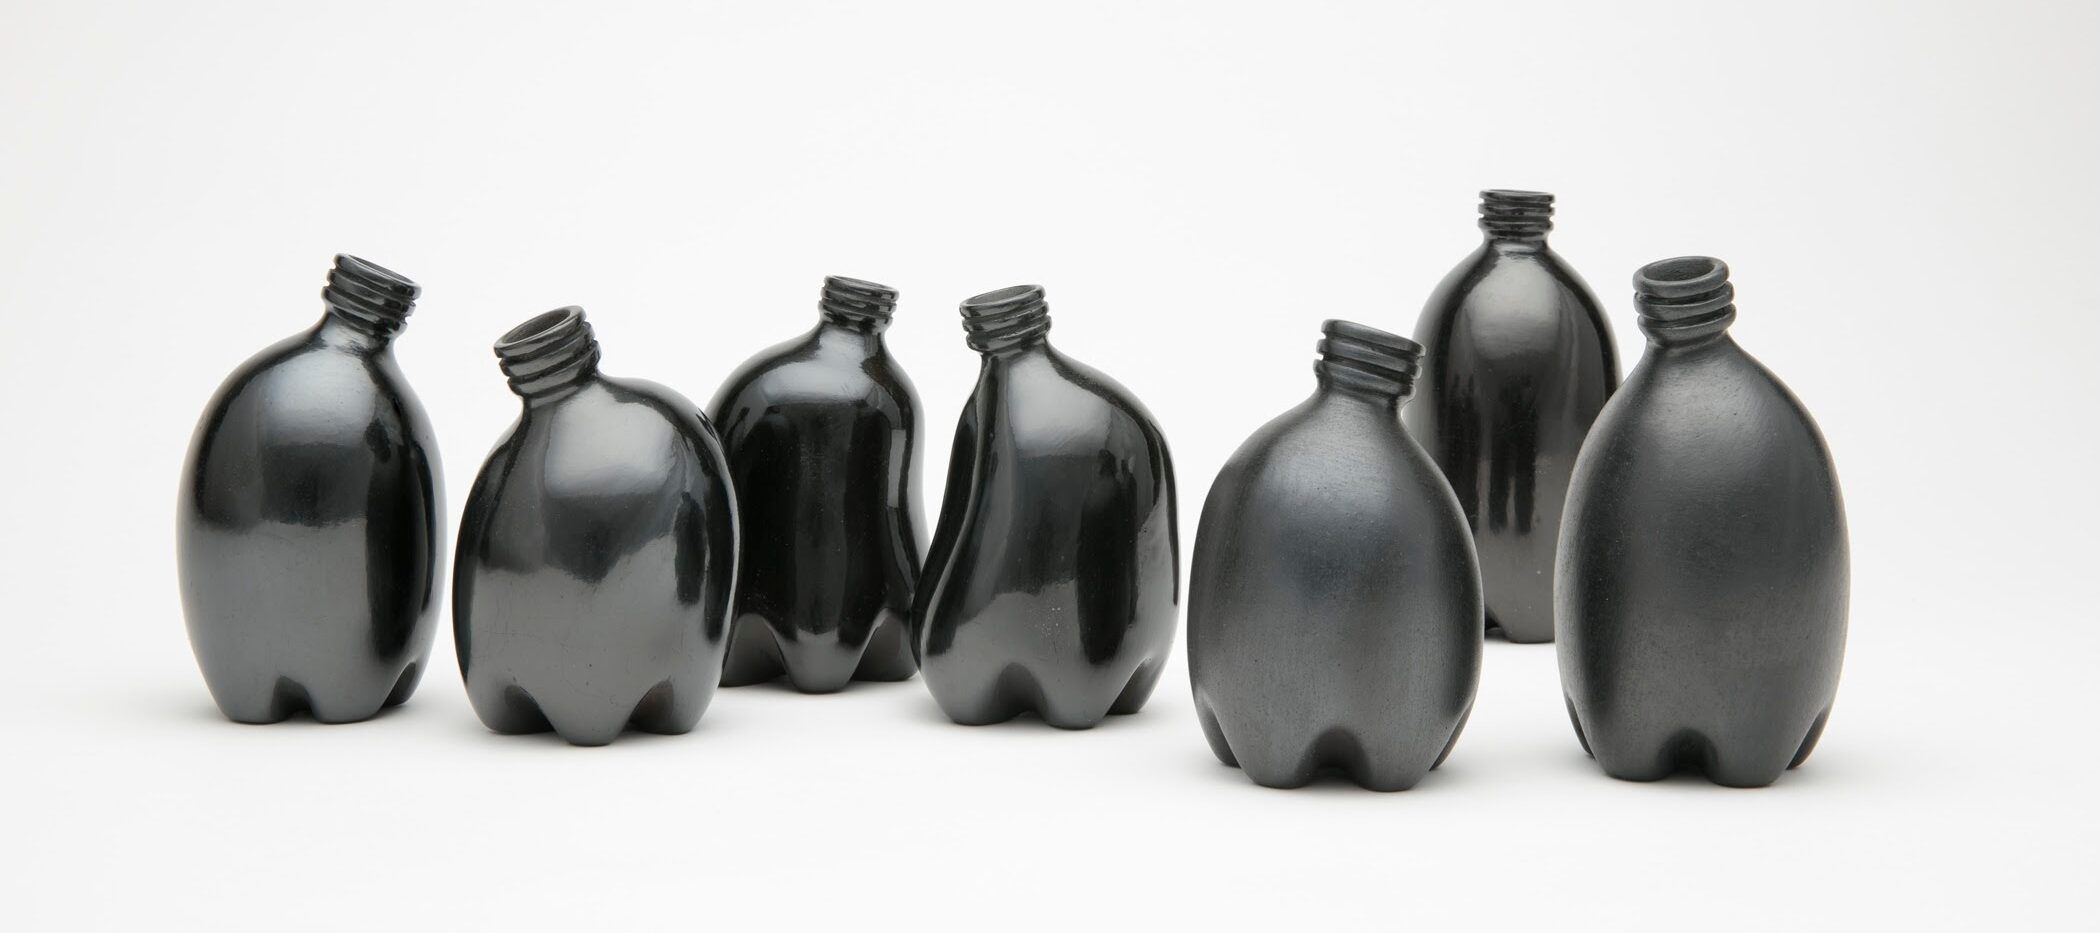 Against a stark white background are seven small clay vessels painted a dark, shiny black. They look like miniature plastic water bottles and are each slightly bent, making them appear like a gathering of people interacting.